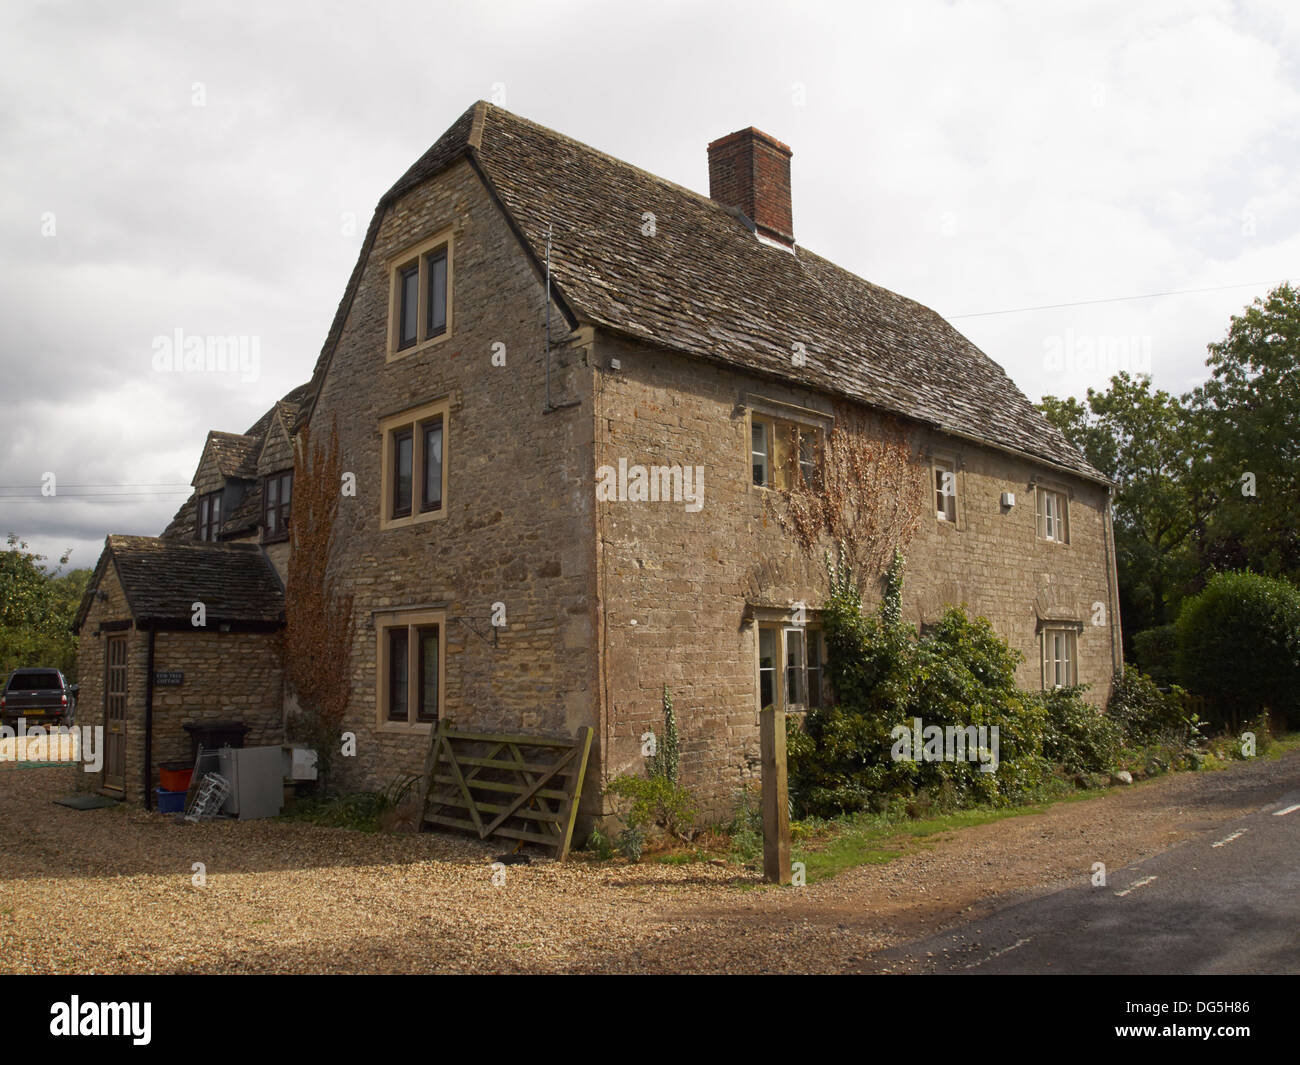 Classic Cotswolds House near Lechlade, England - Stock Image